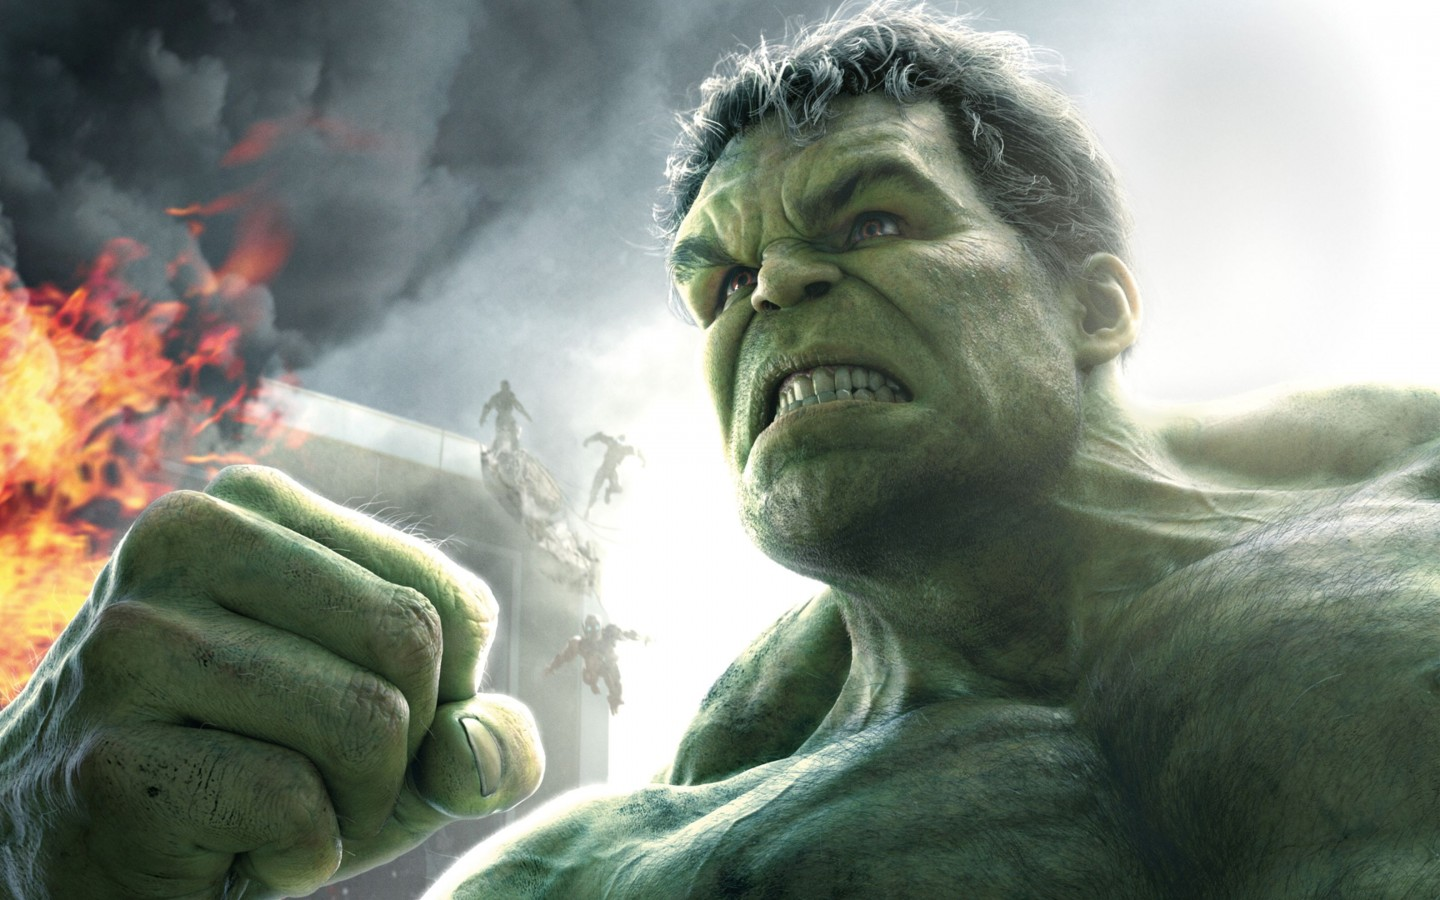 Pictures of the hulk in avengers